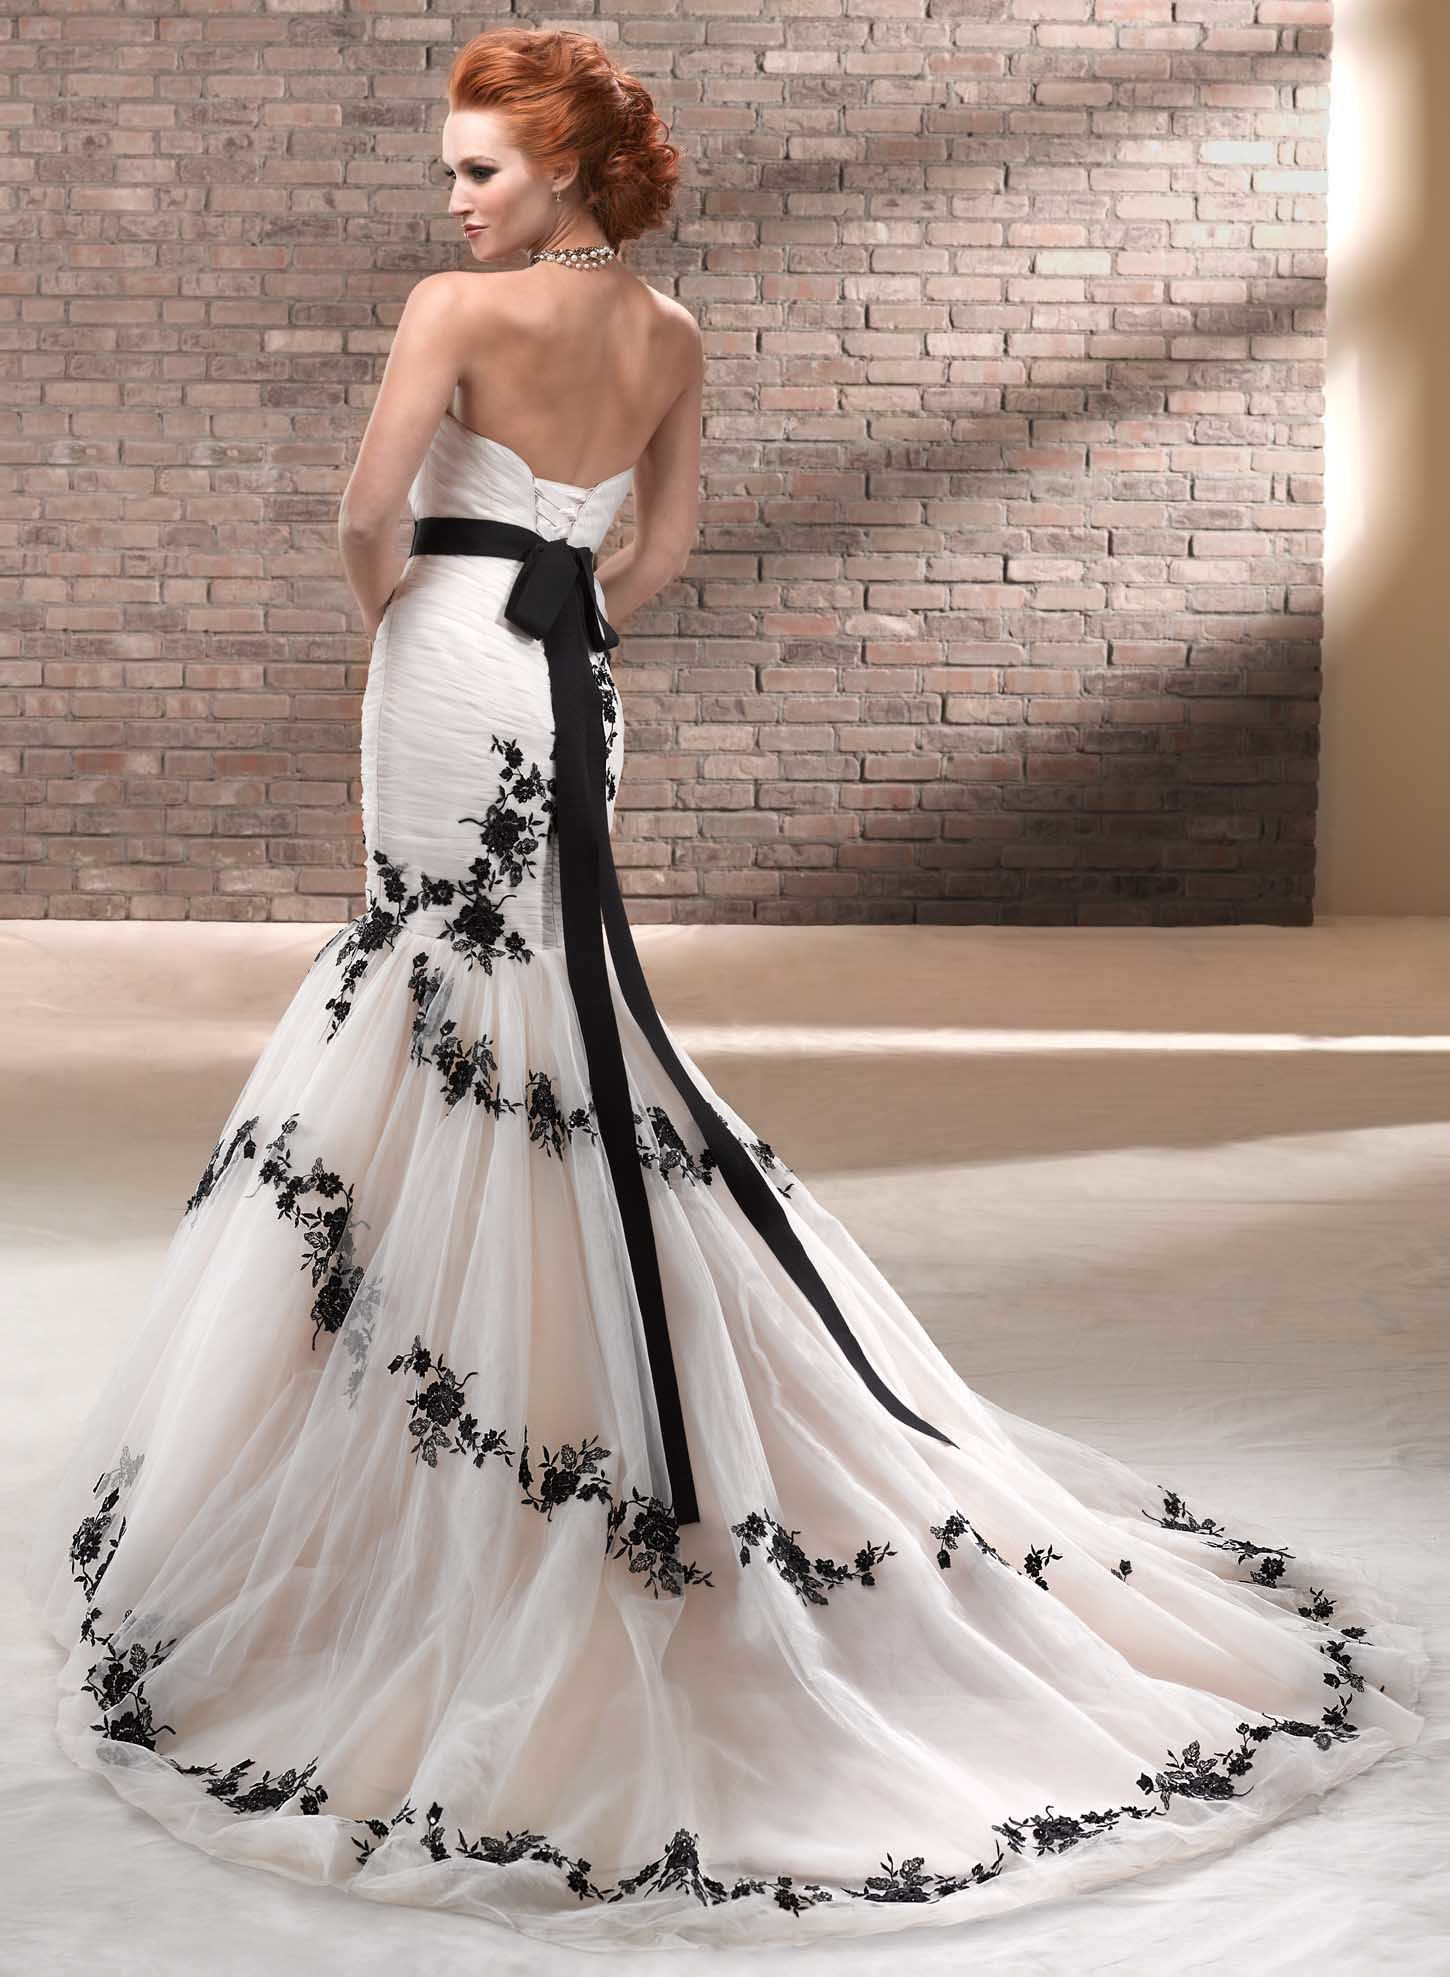 Black and White Mermaid Wedding Dress With Lace. Perfect